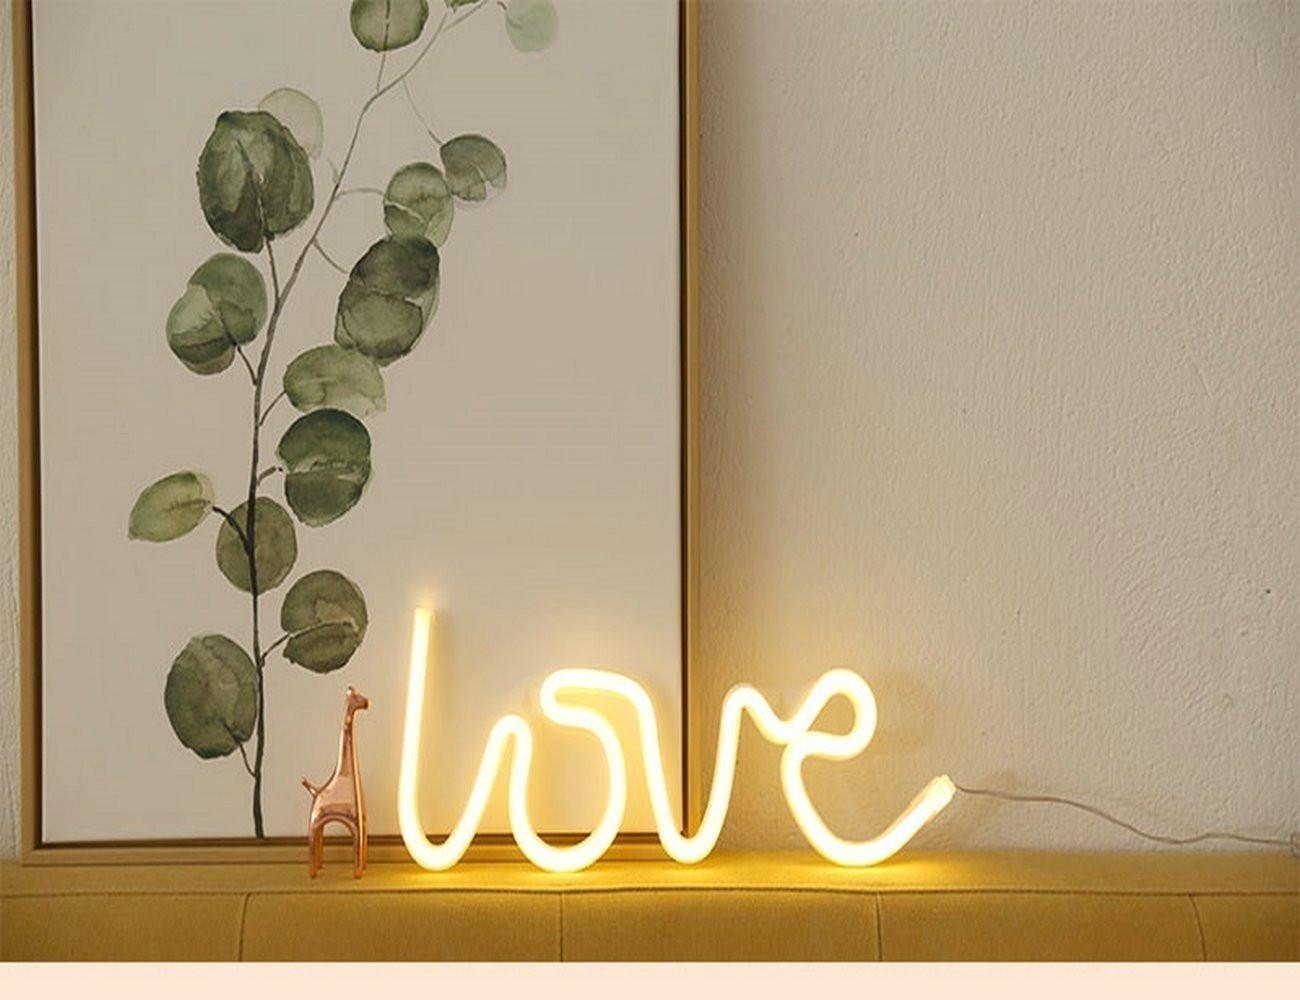 Neon Signs Love Warm White,USB Powered Neon Light,LED Lights Table Decoration,Girls Bedroom Wall Décor,Kids Birthday Gift,Wedding Party Supplies Neon Sign